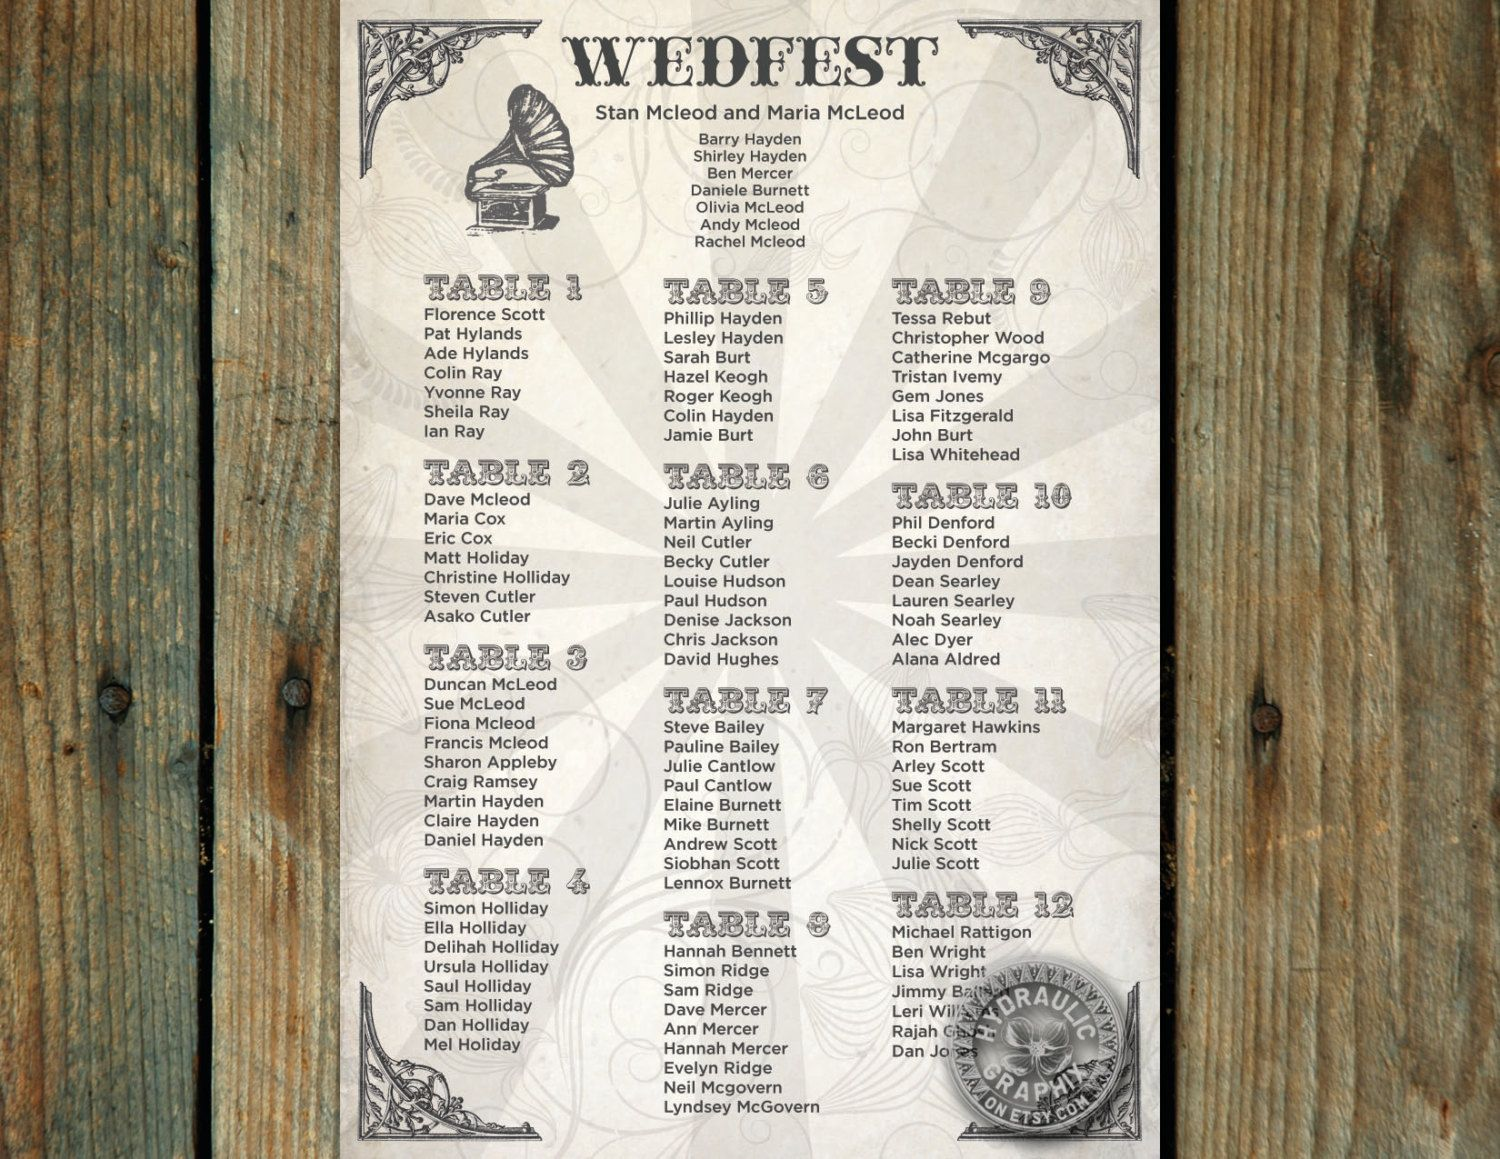 Wedding Seating Chart For Music Theme Wedding Wedfest Table Plan